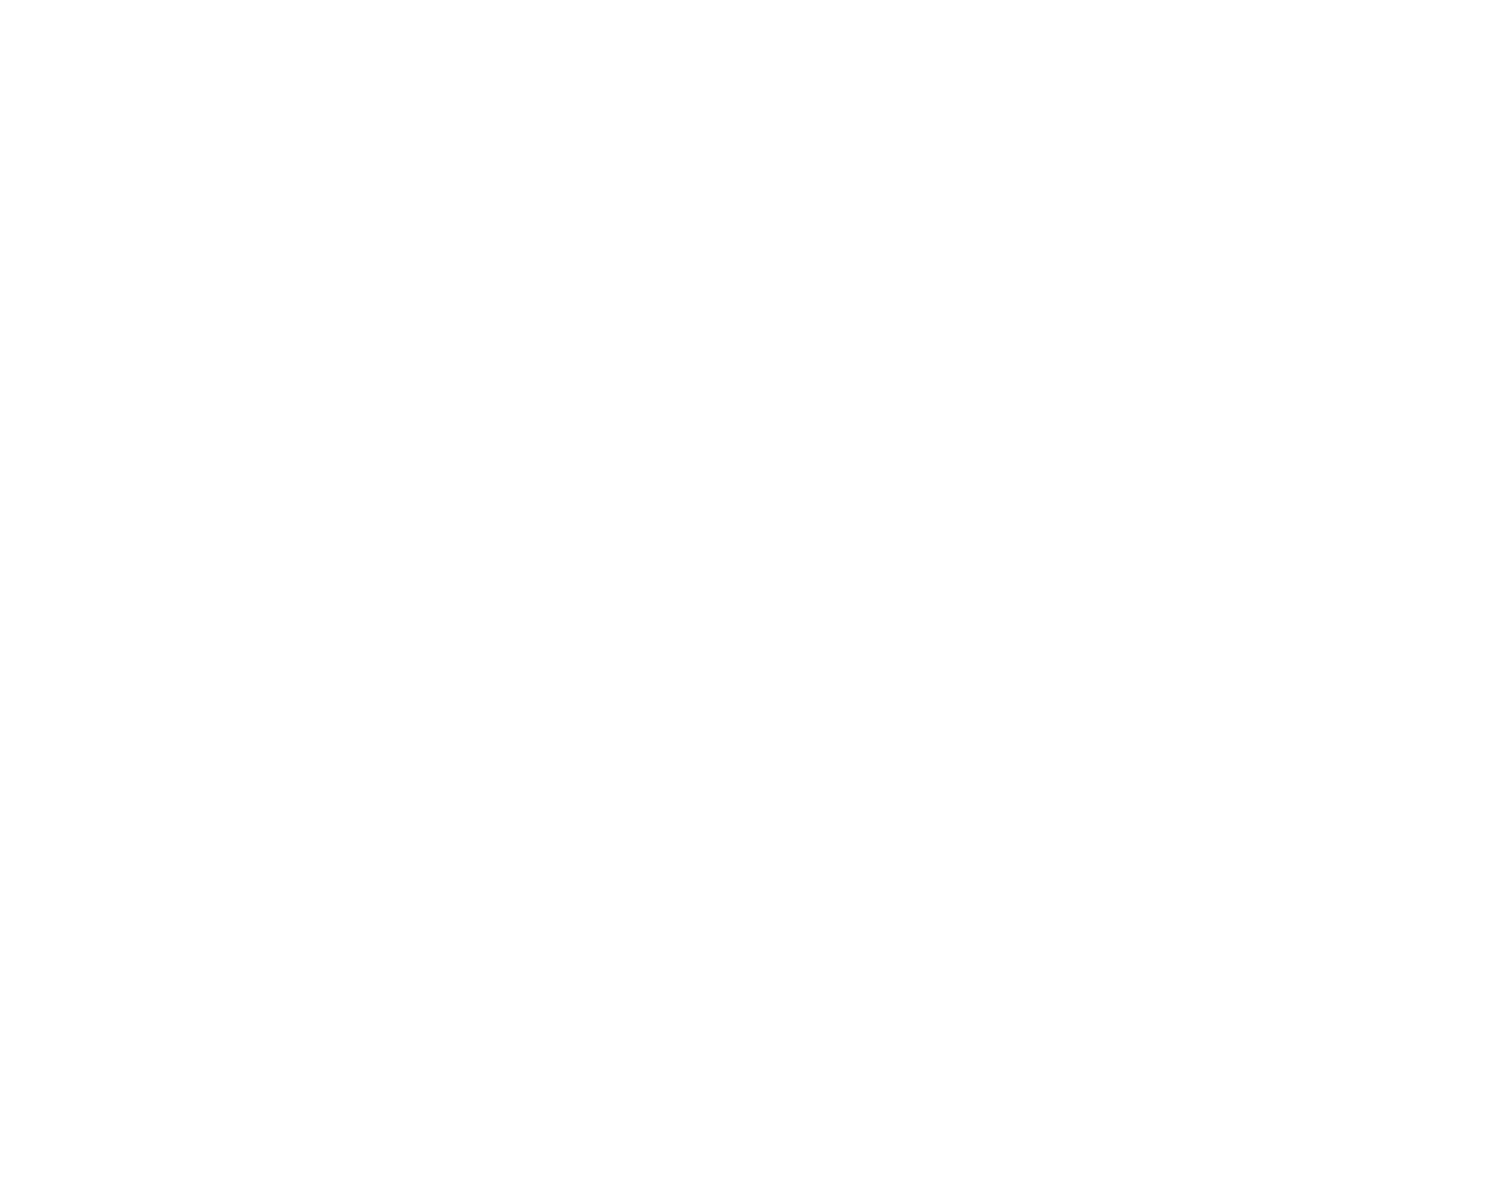 Hamptons Landscape Lighting